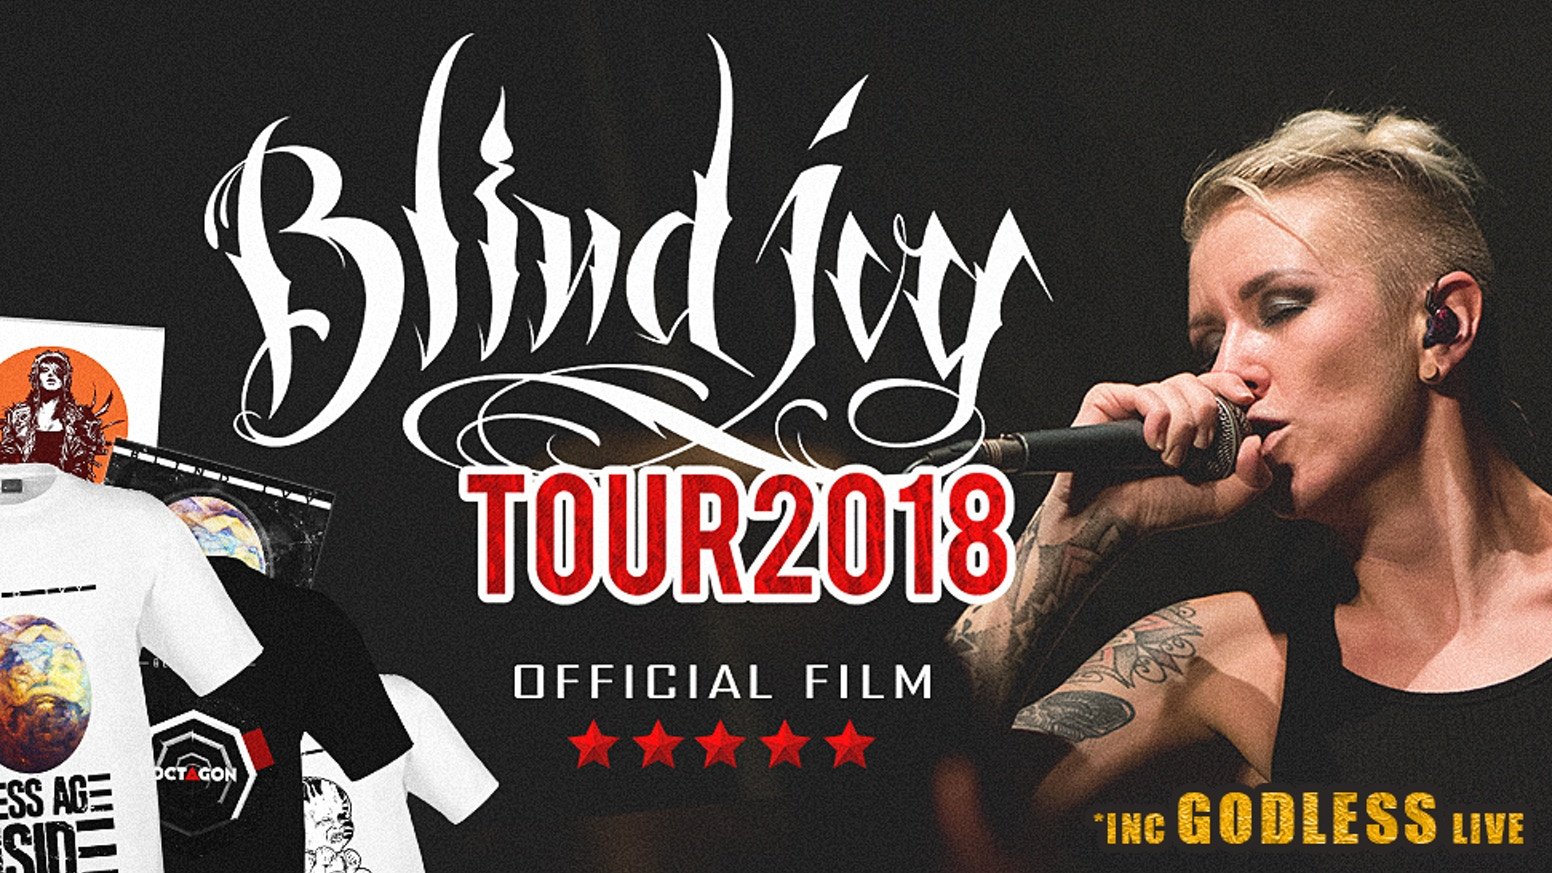 The full length feature documentary film capturing Blind Ivy's Tour of 10 cities & NEW MERCH #GODLESS